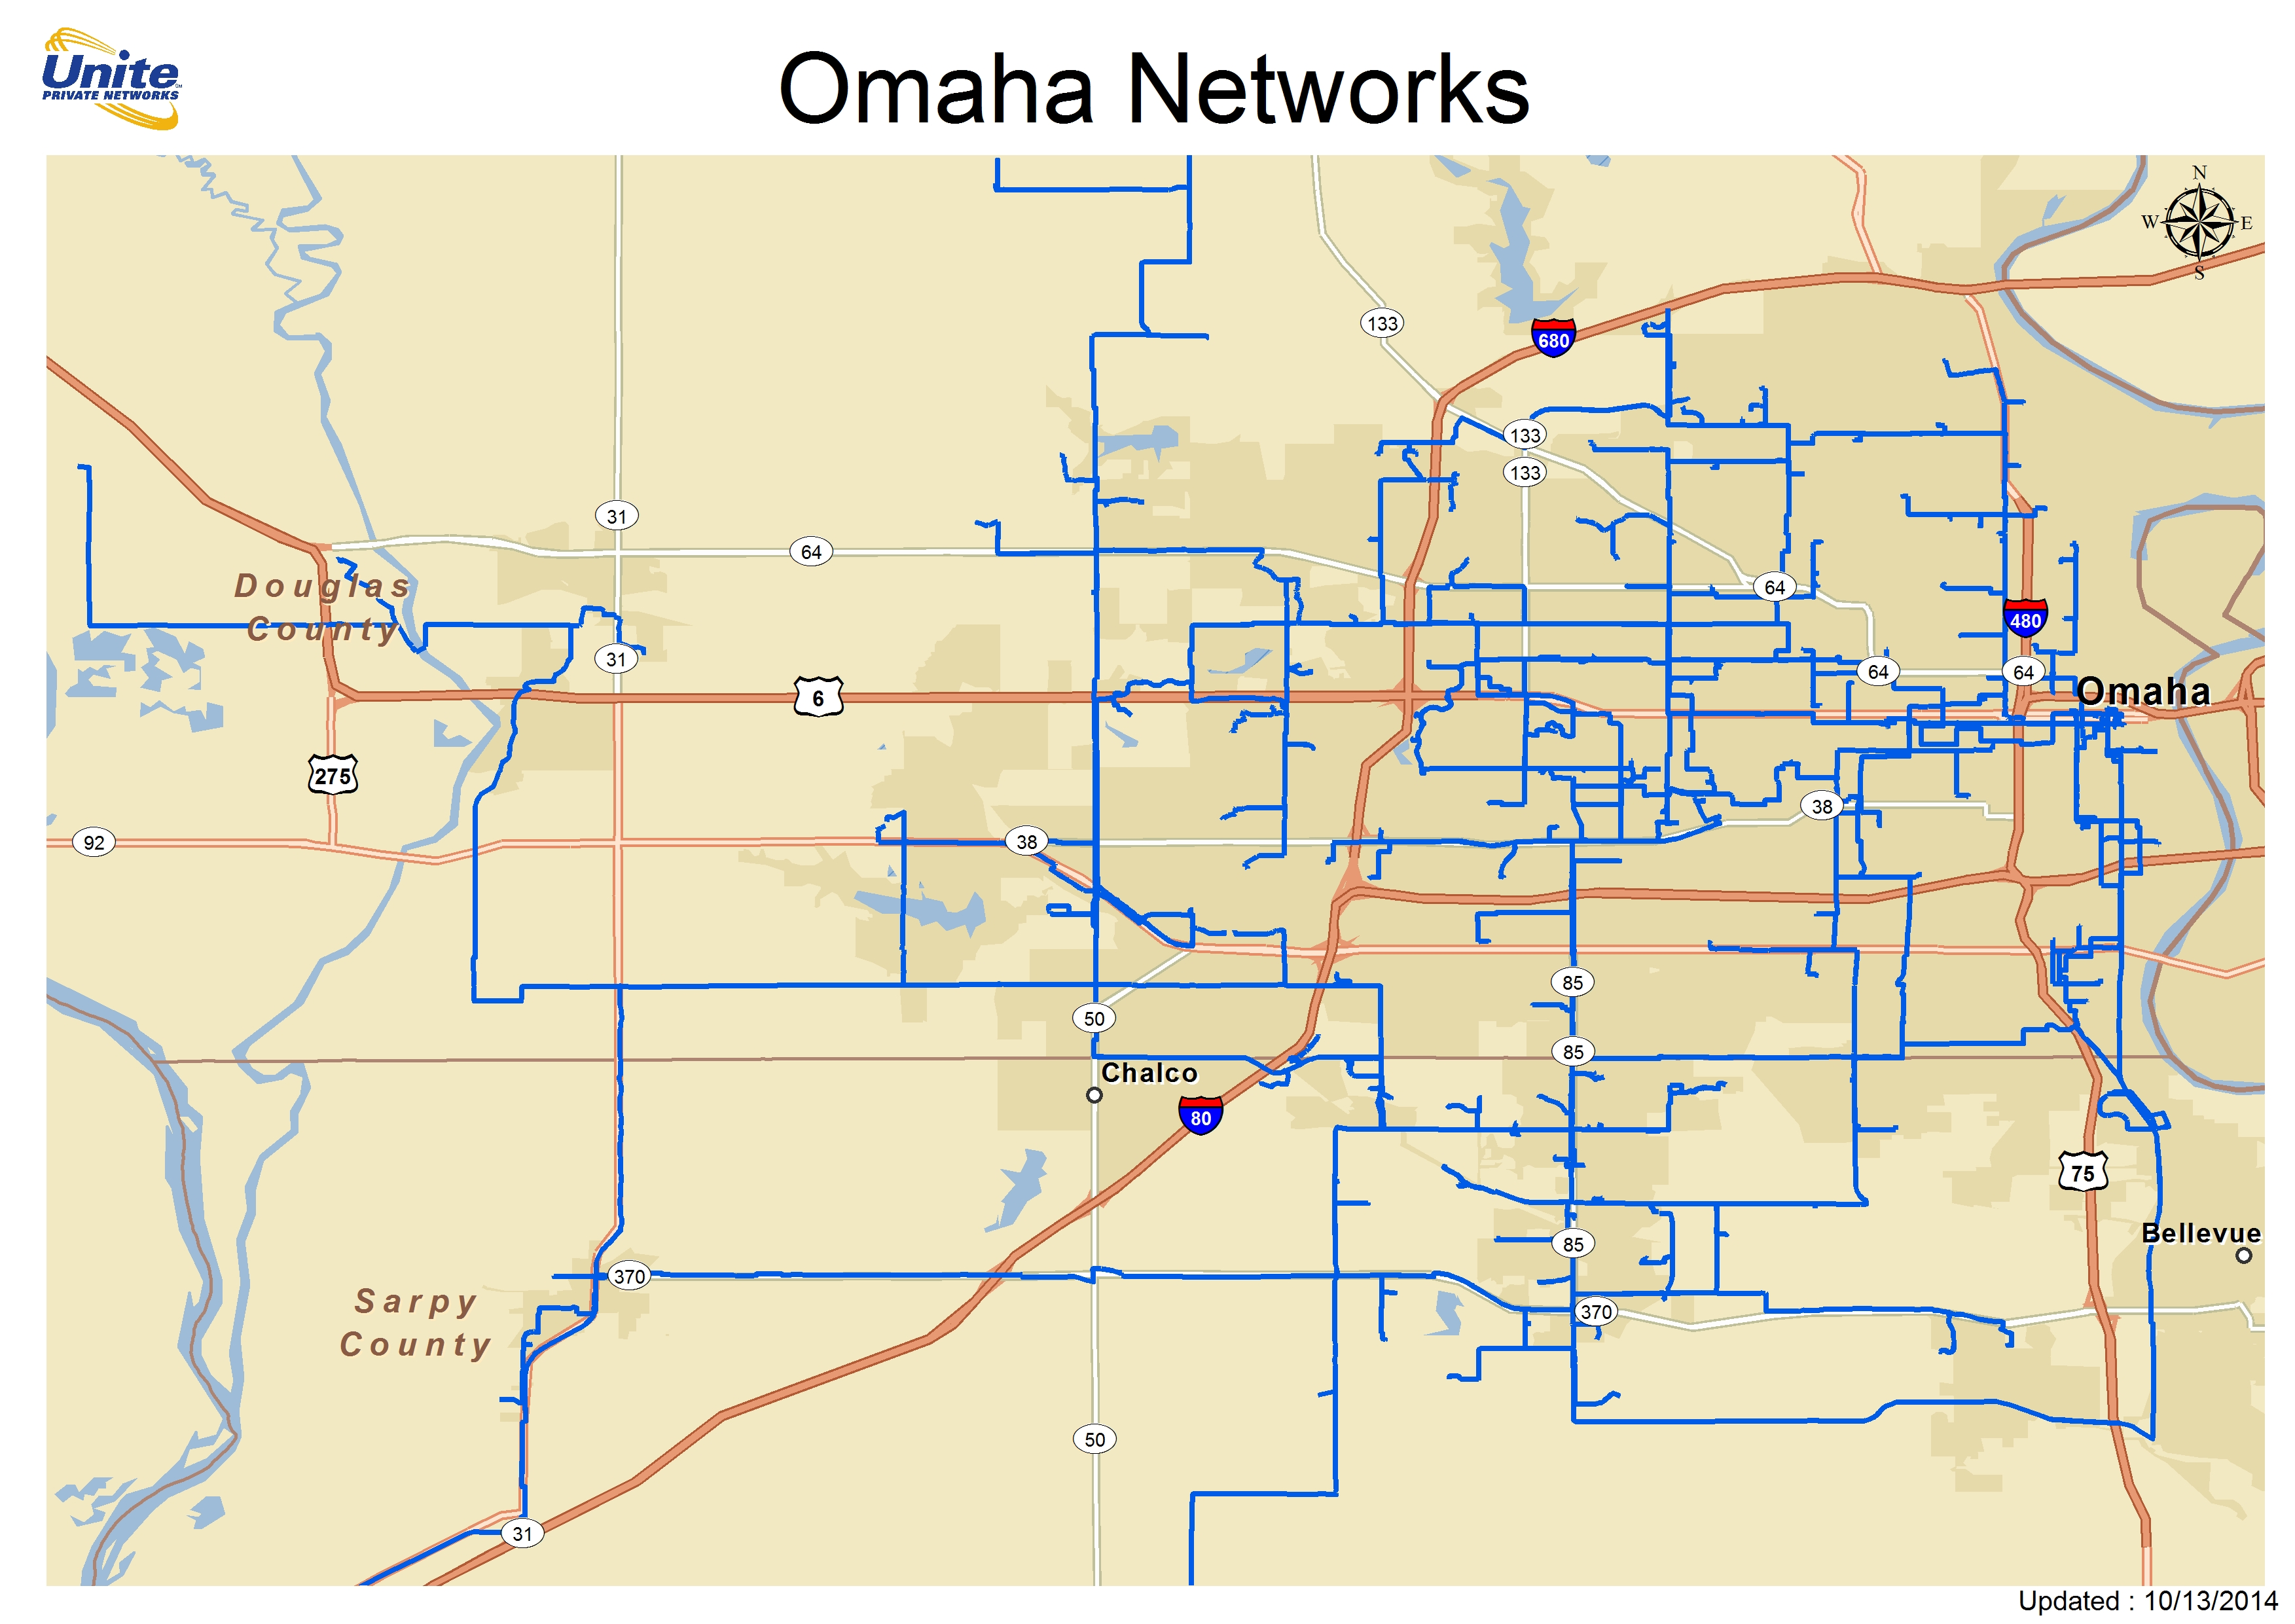 Metro Fiber Maps: Great Plains | Telecom Ramblings